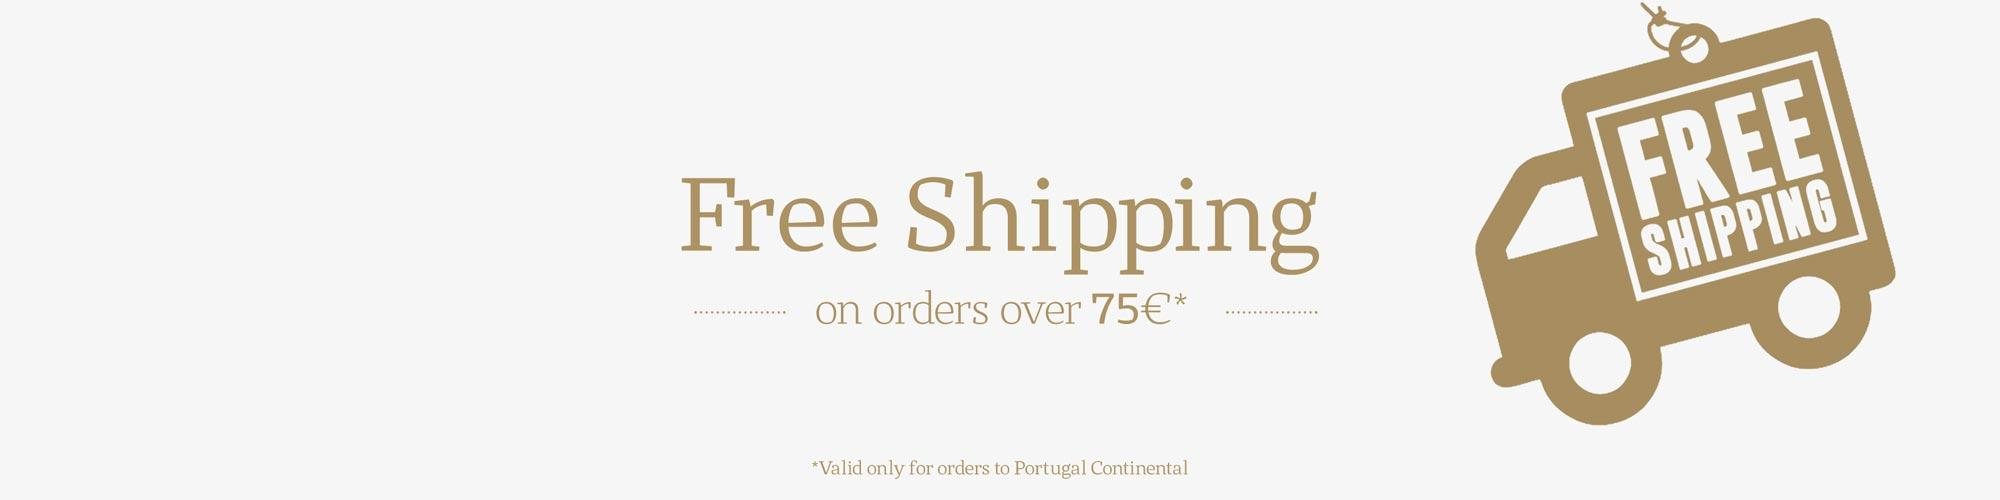 Free Shipping on orders over 75€